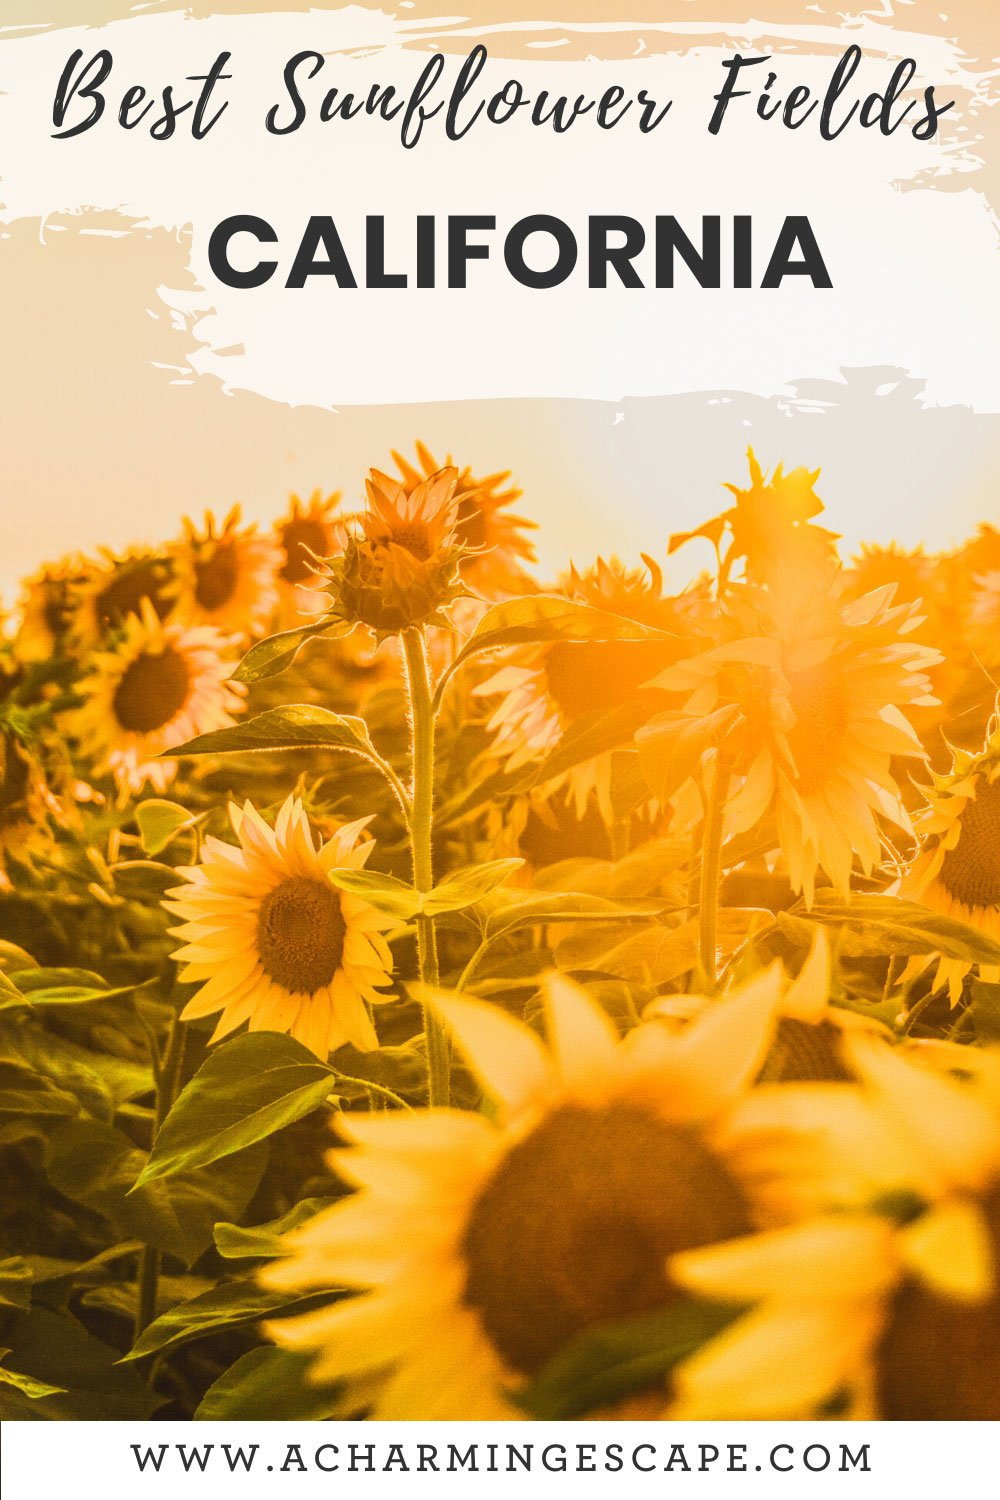 Best sunflower fields in California